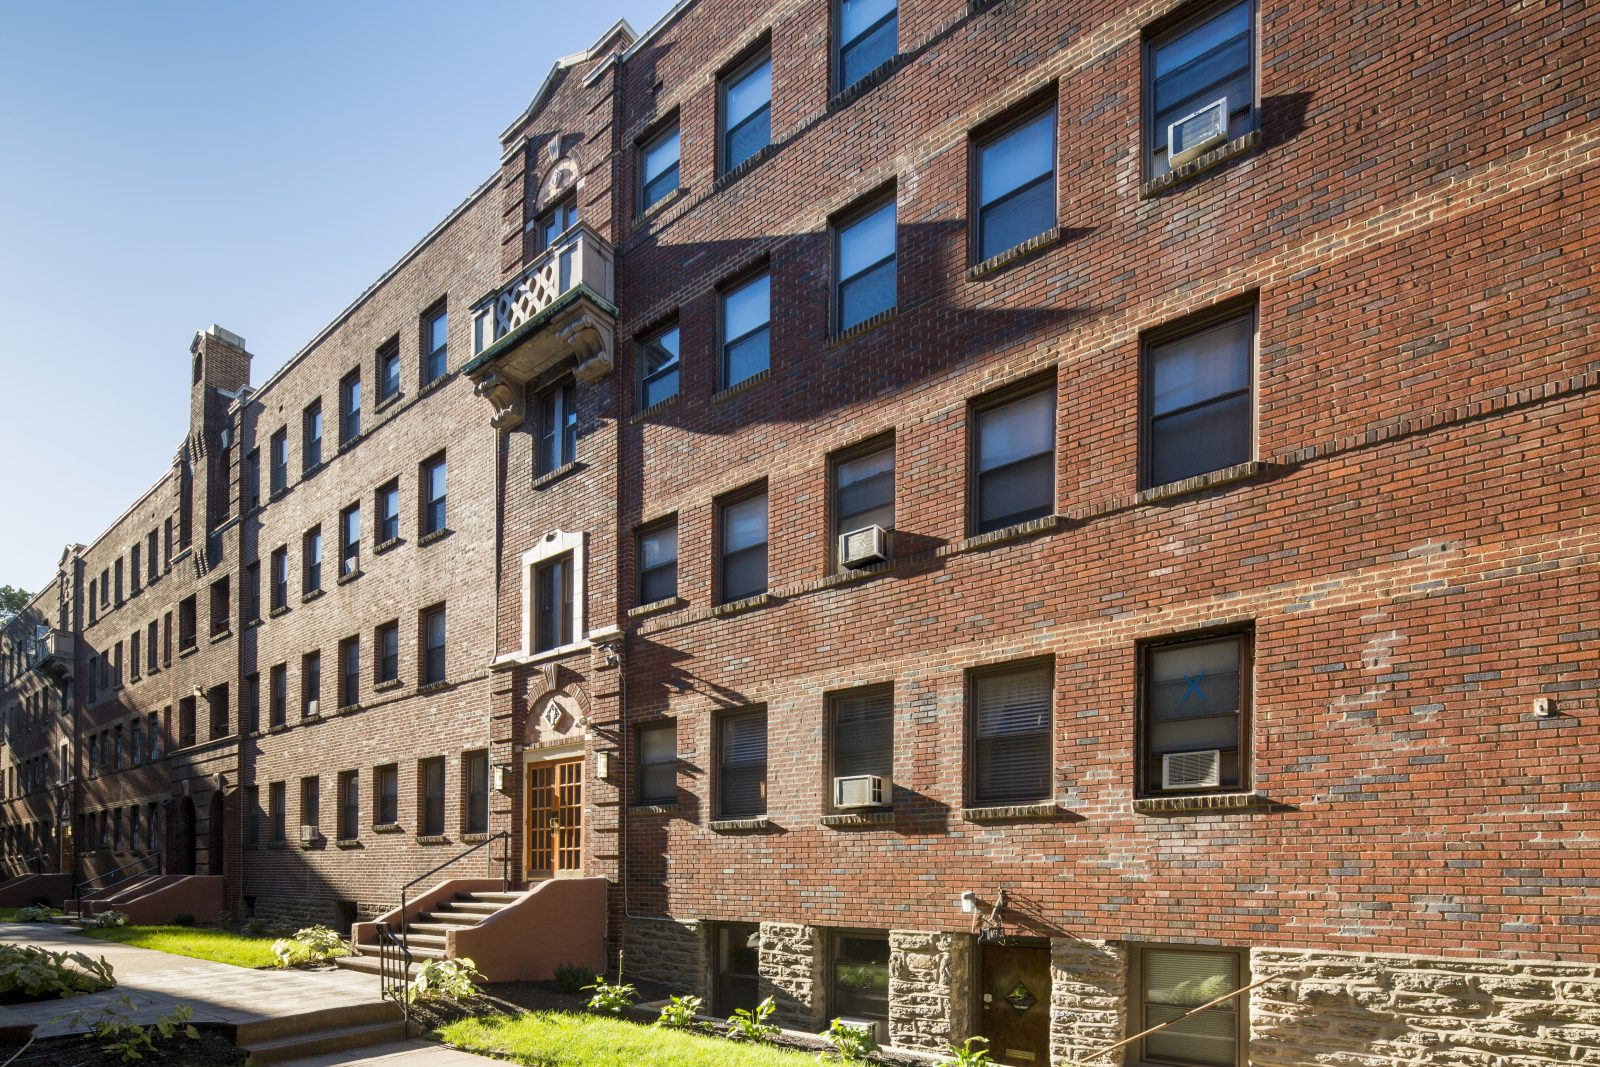 in the news mount airy apartments sell for m  commercial  -  w walnut lane philadelphia pa republished from the philadelphiabusiness journal mount airy apartments